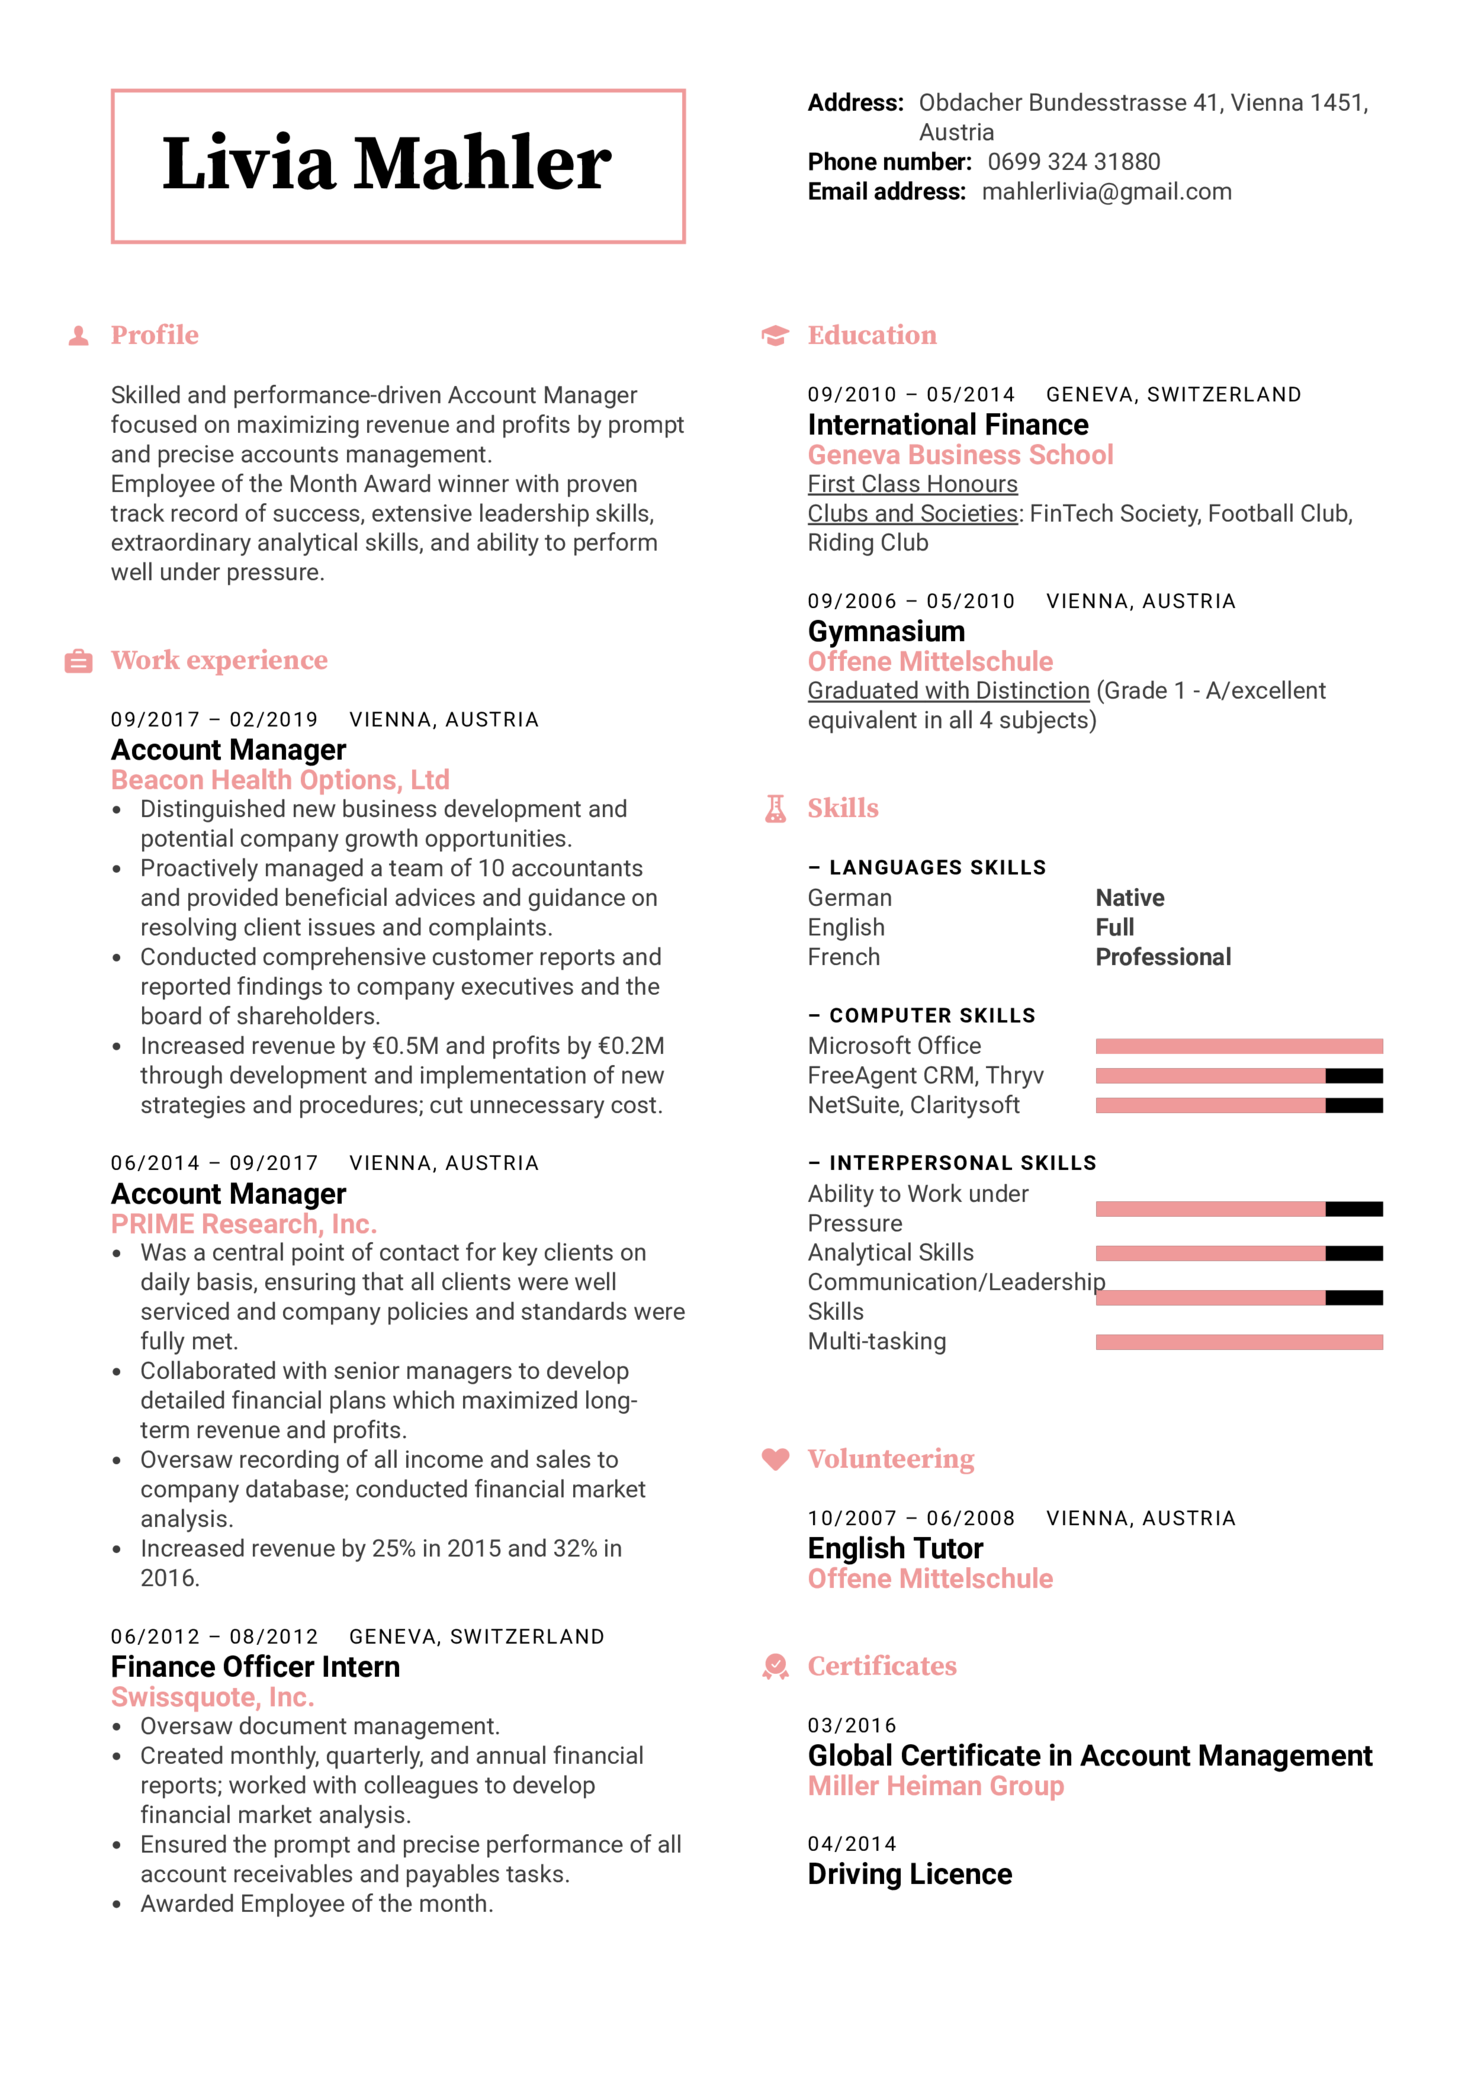 Account Manager Resume Template (Part 1)